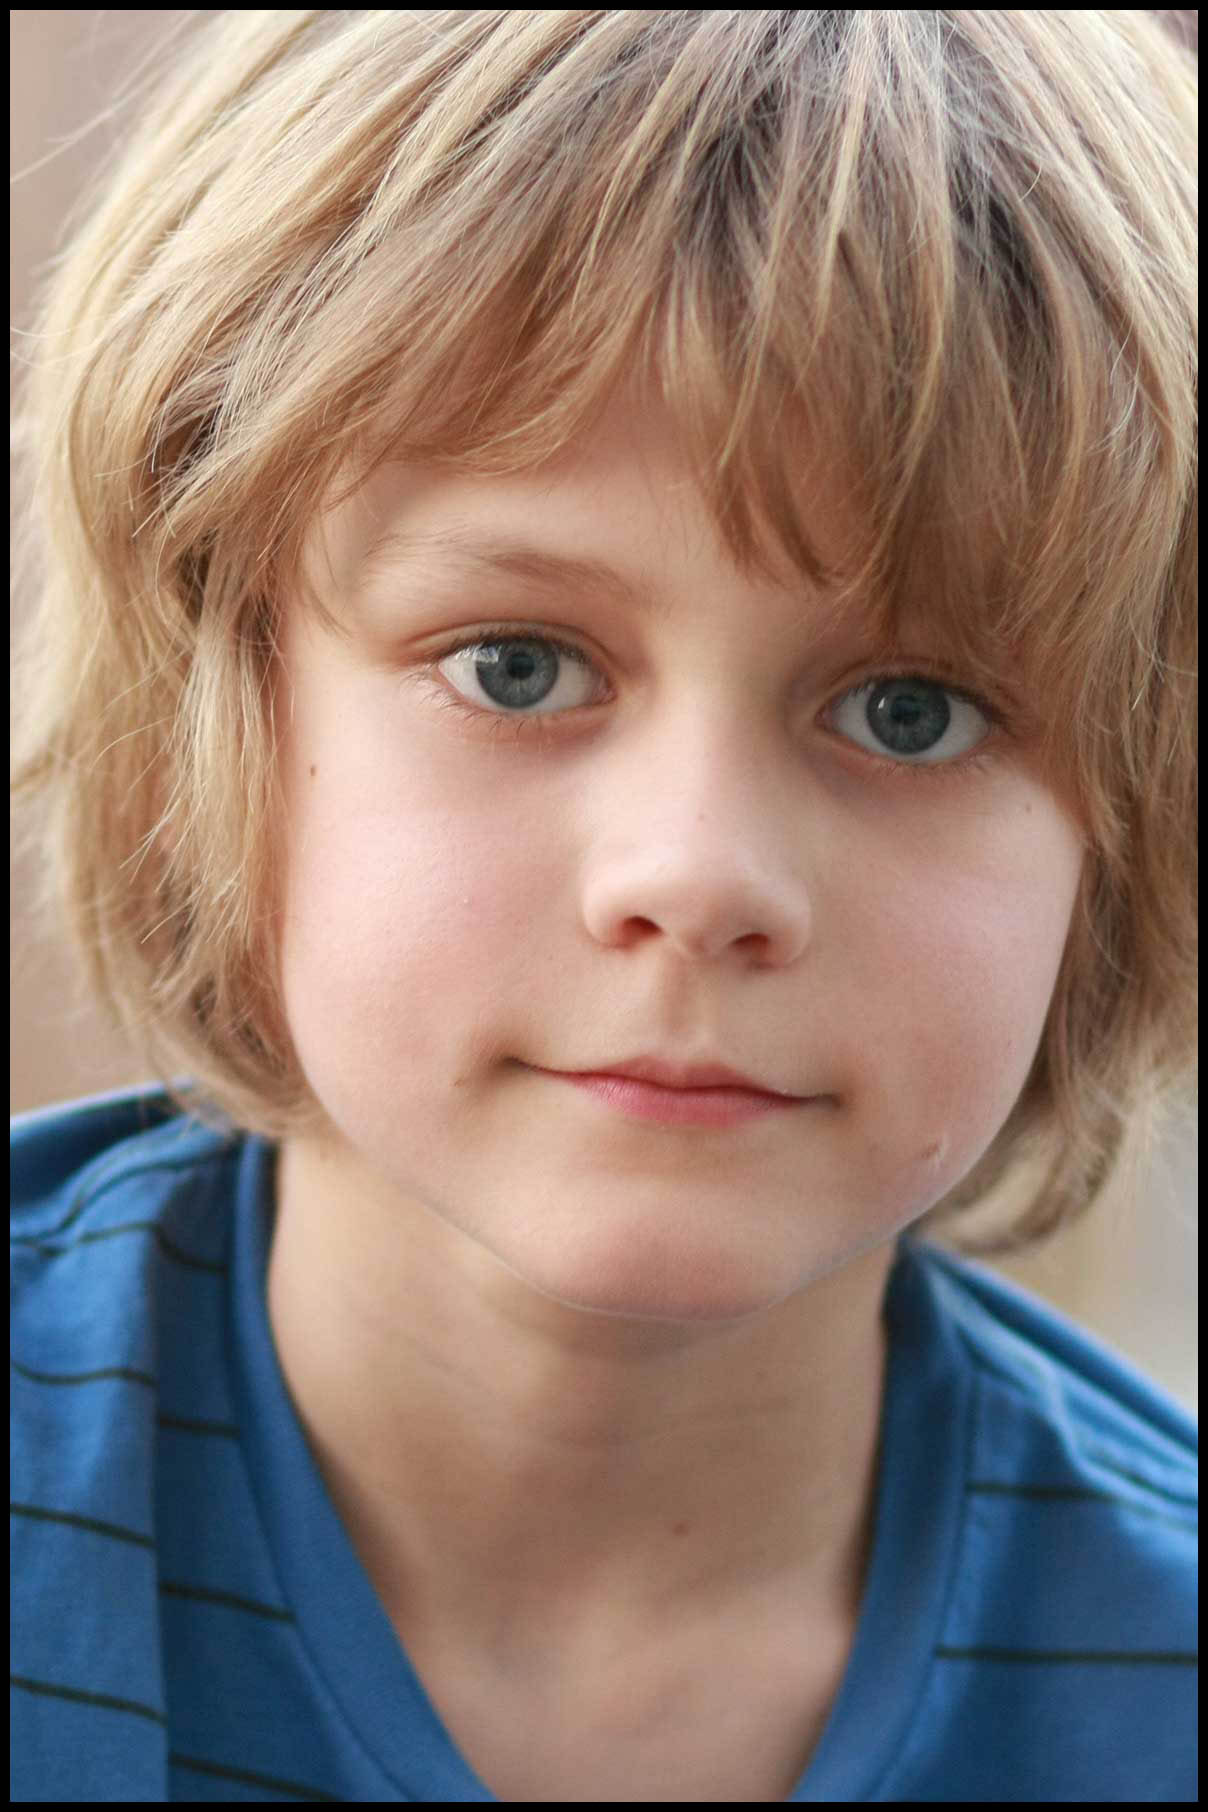 The 16-year old son of father (?) and mother(?), 154 cm tall Ty Simpkins in 2017 photo